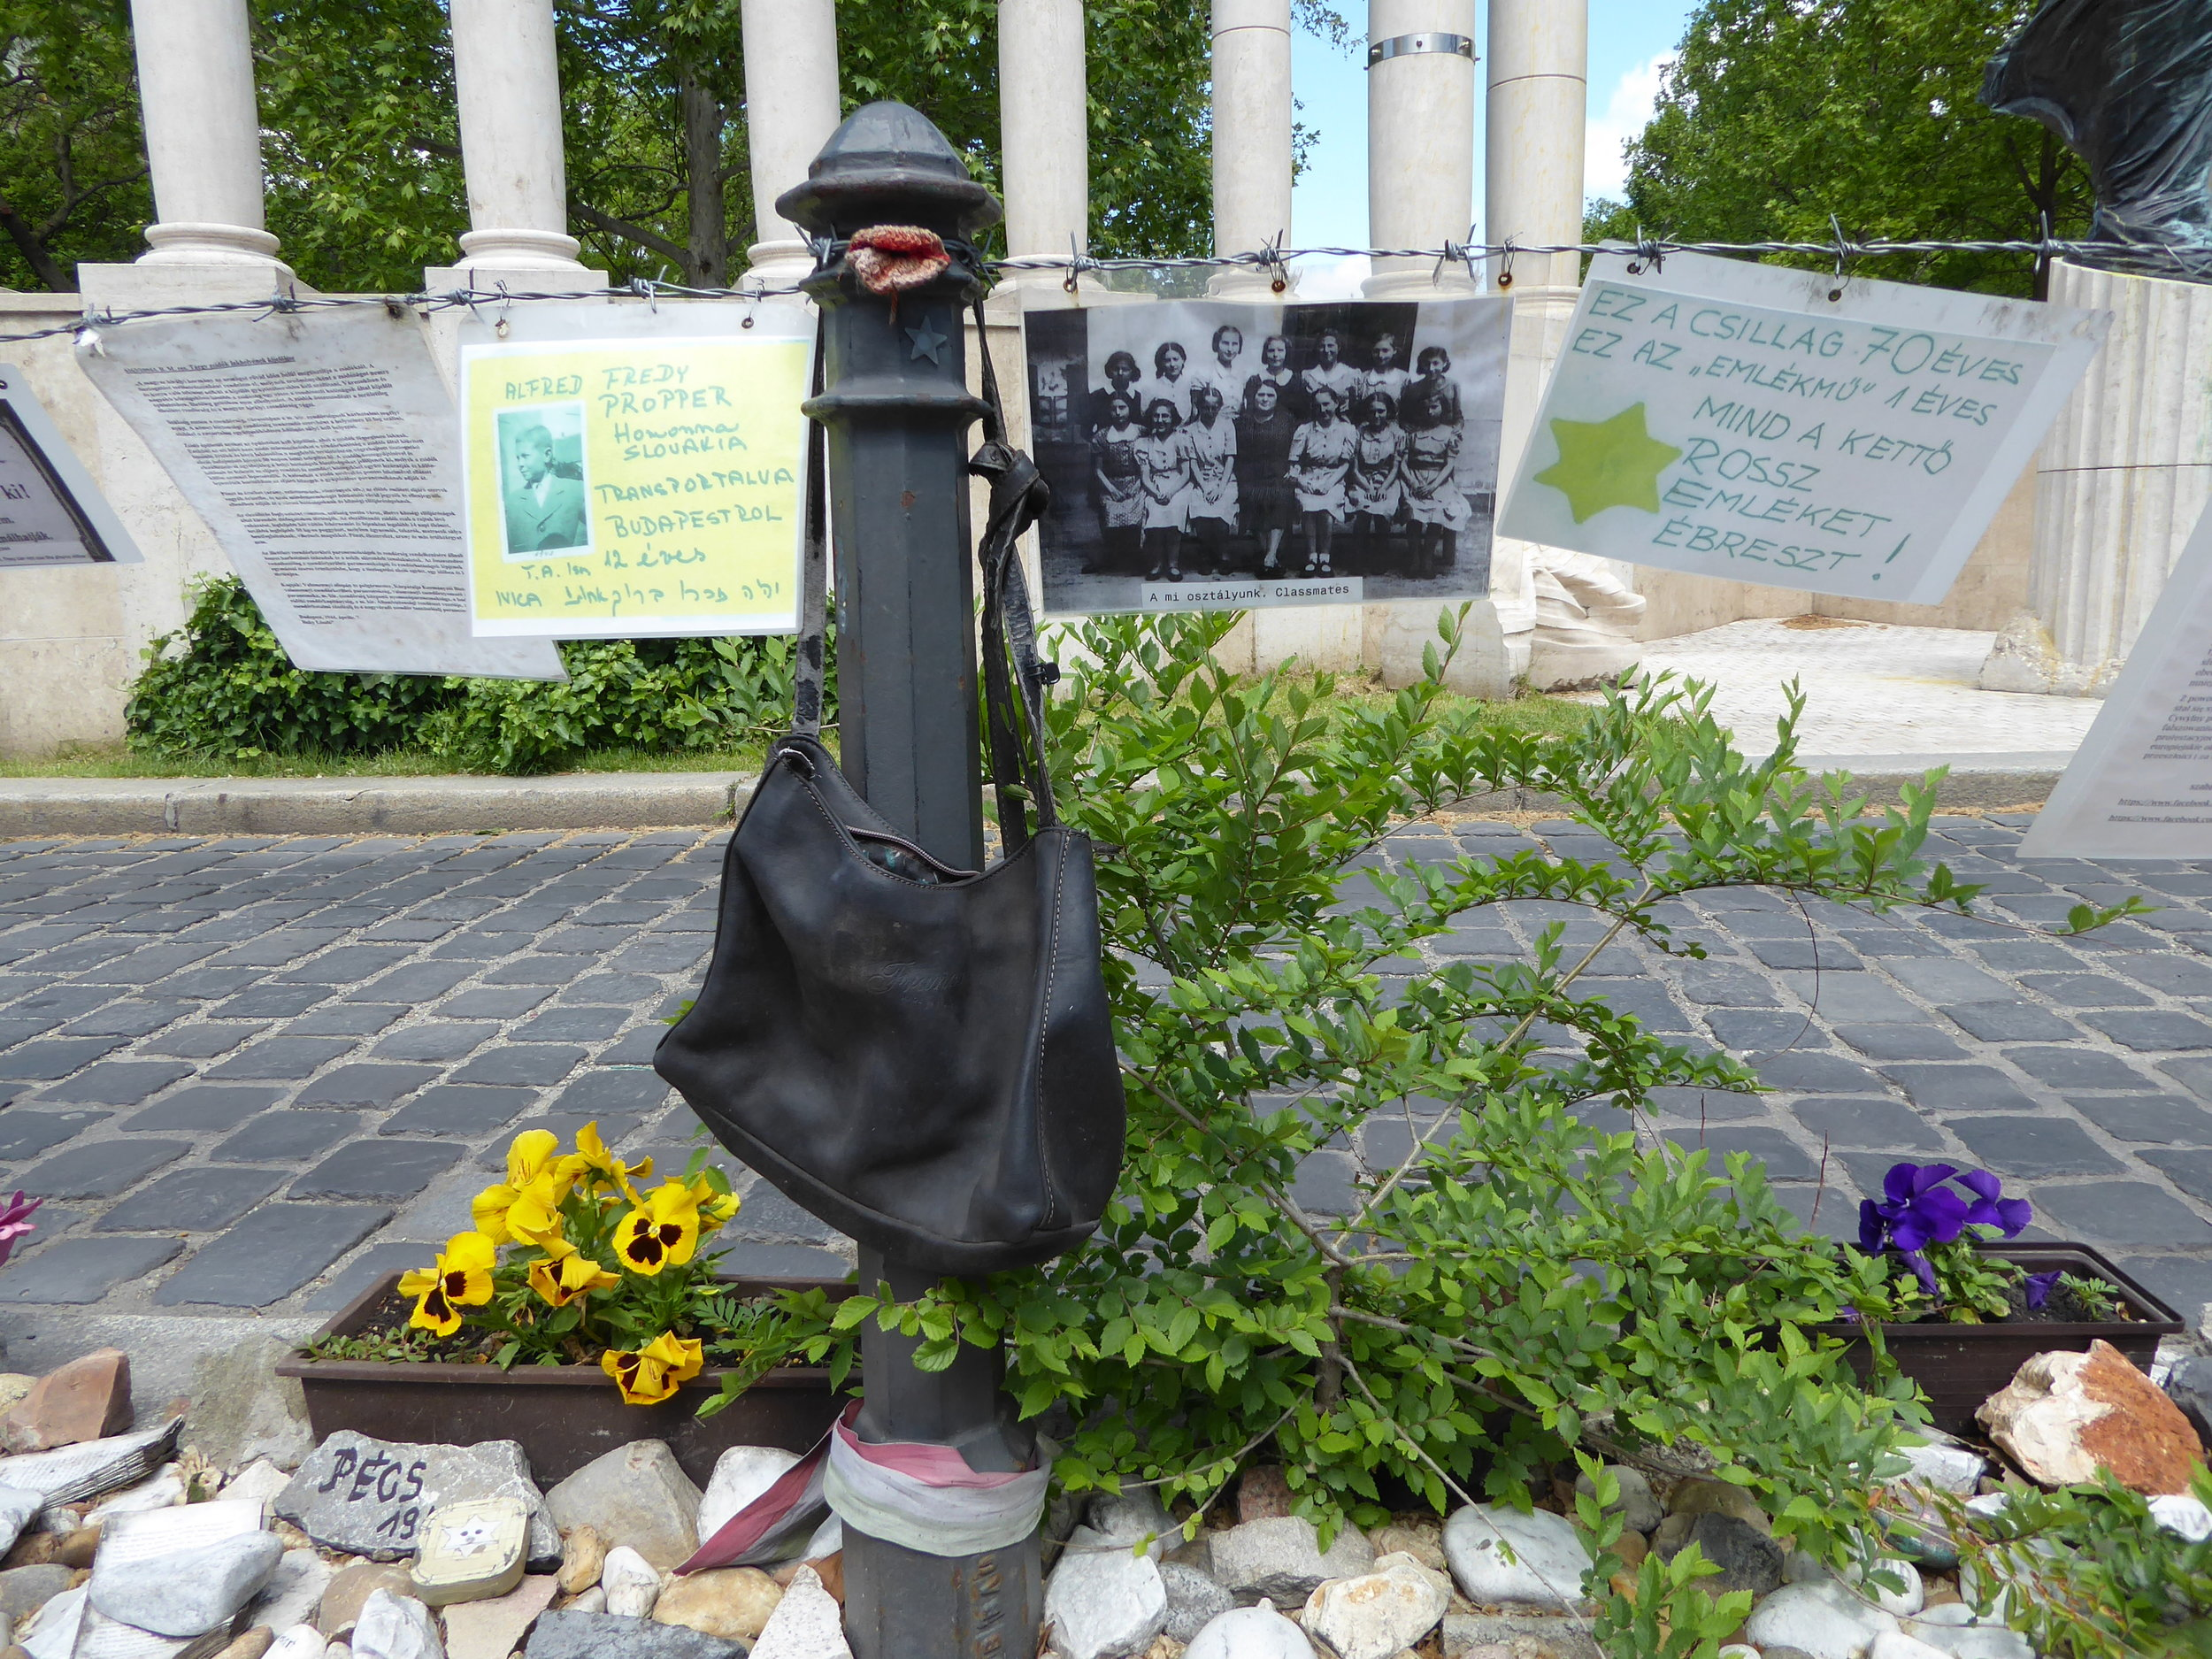 An ongoing visual protest against a World War II memorial supposedly honoring those killed in the holocaust, but actually whitewashing and glossing over Hungary's anti-semitism and culpability even before the German takeover of the country.